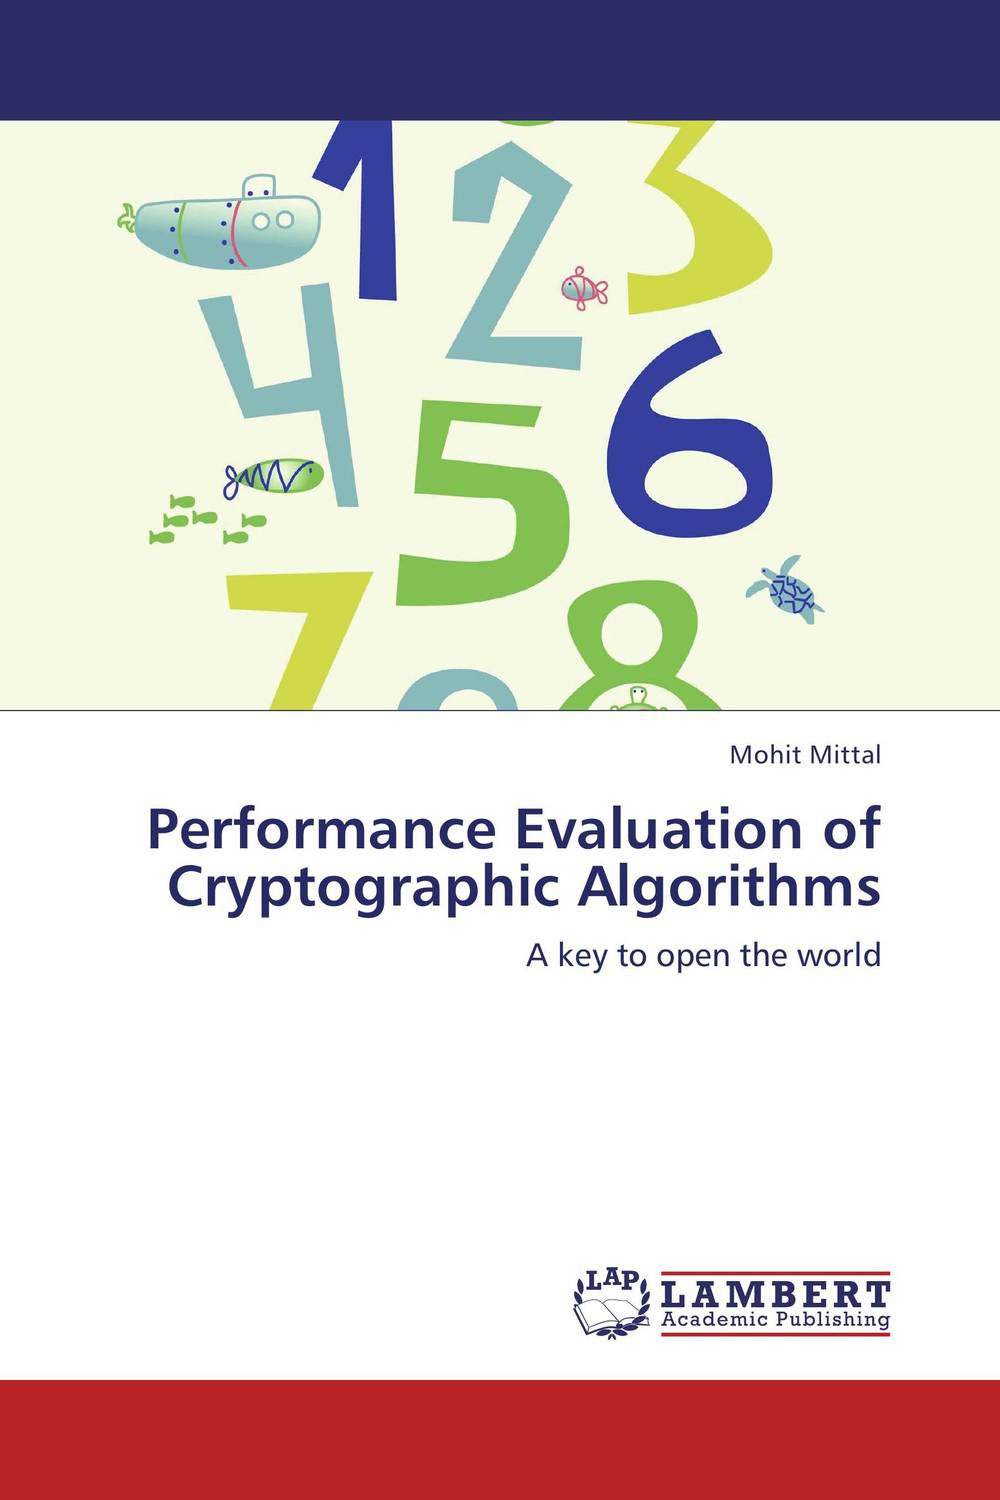 Performance Evaluation of Cryptographic Algorithms